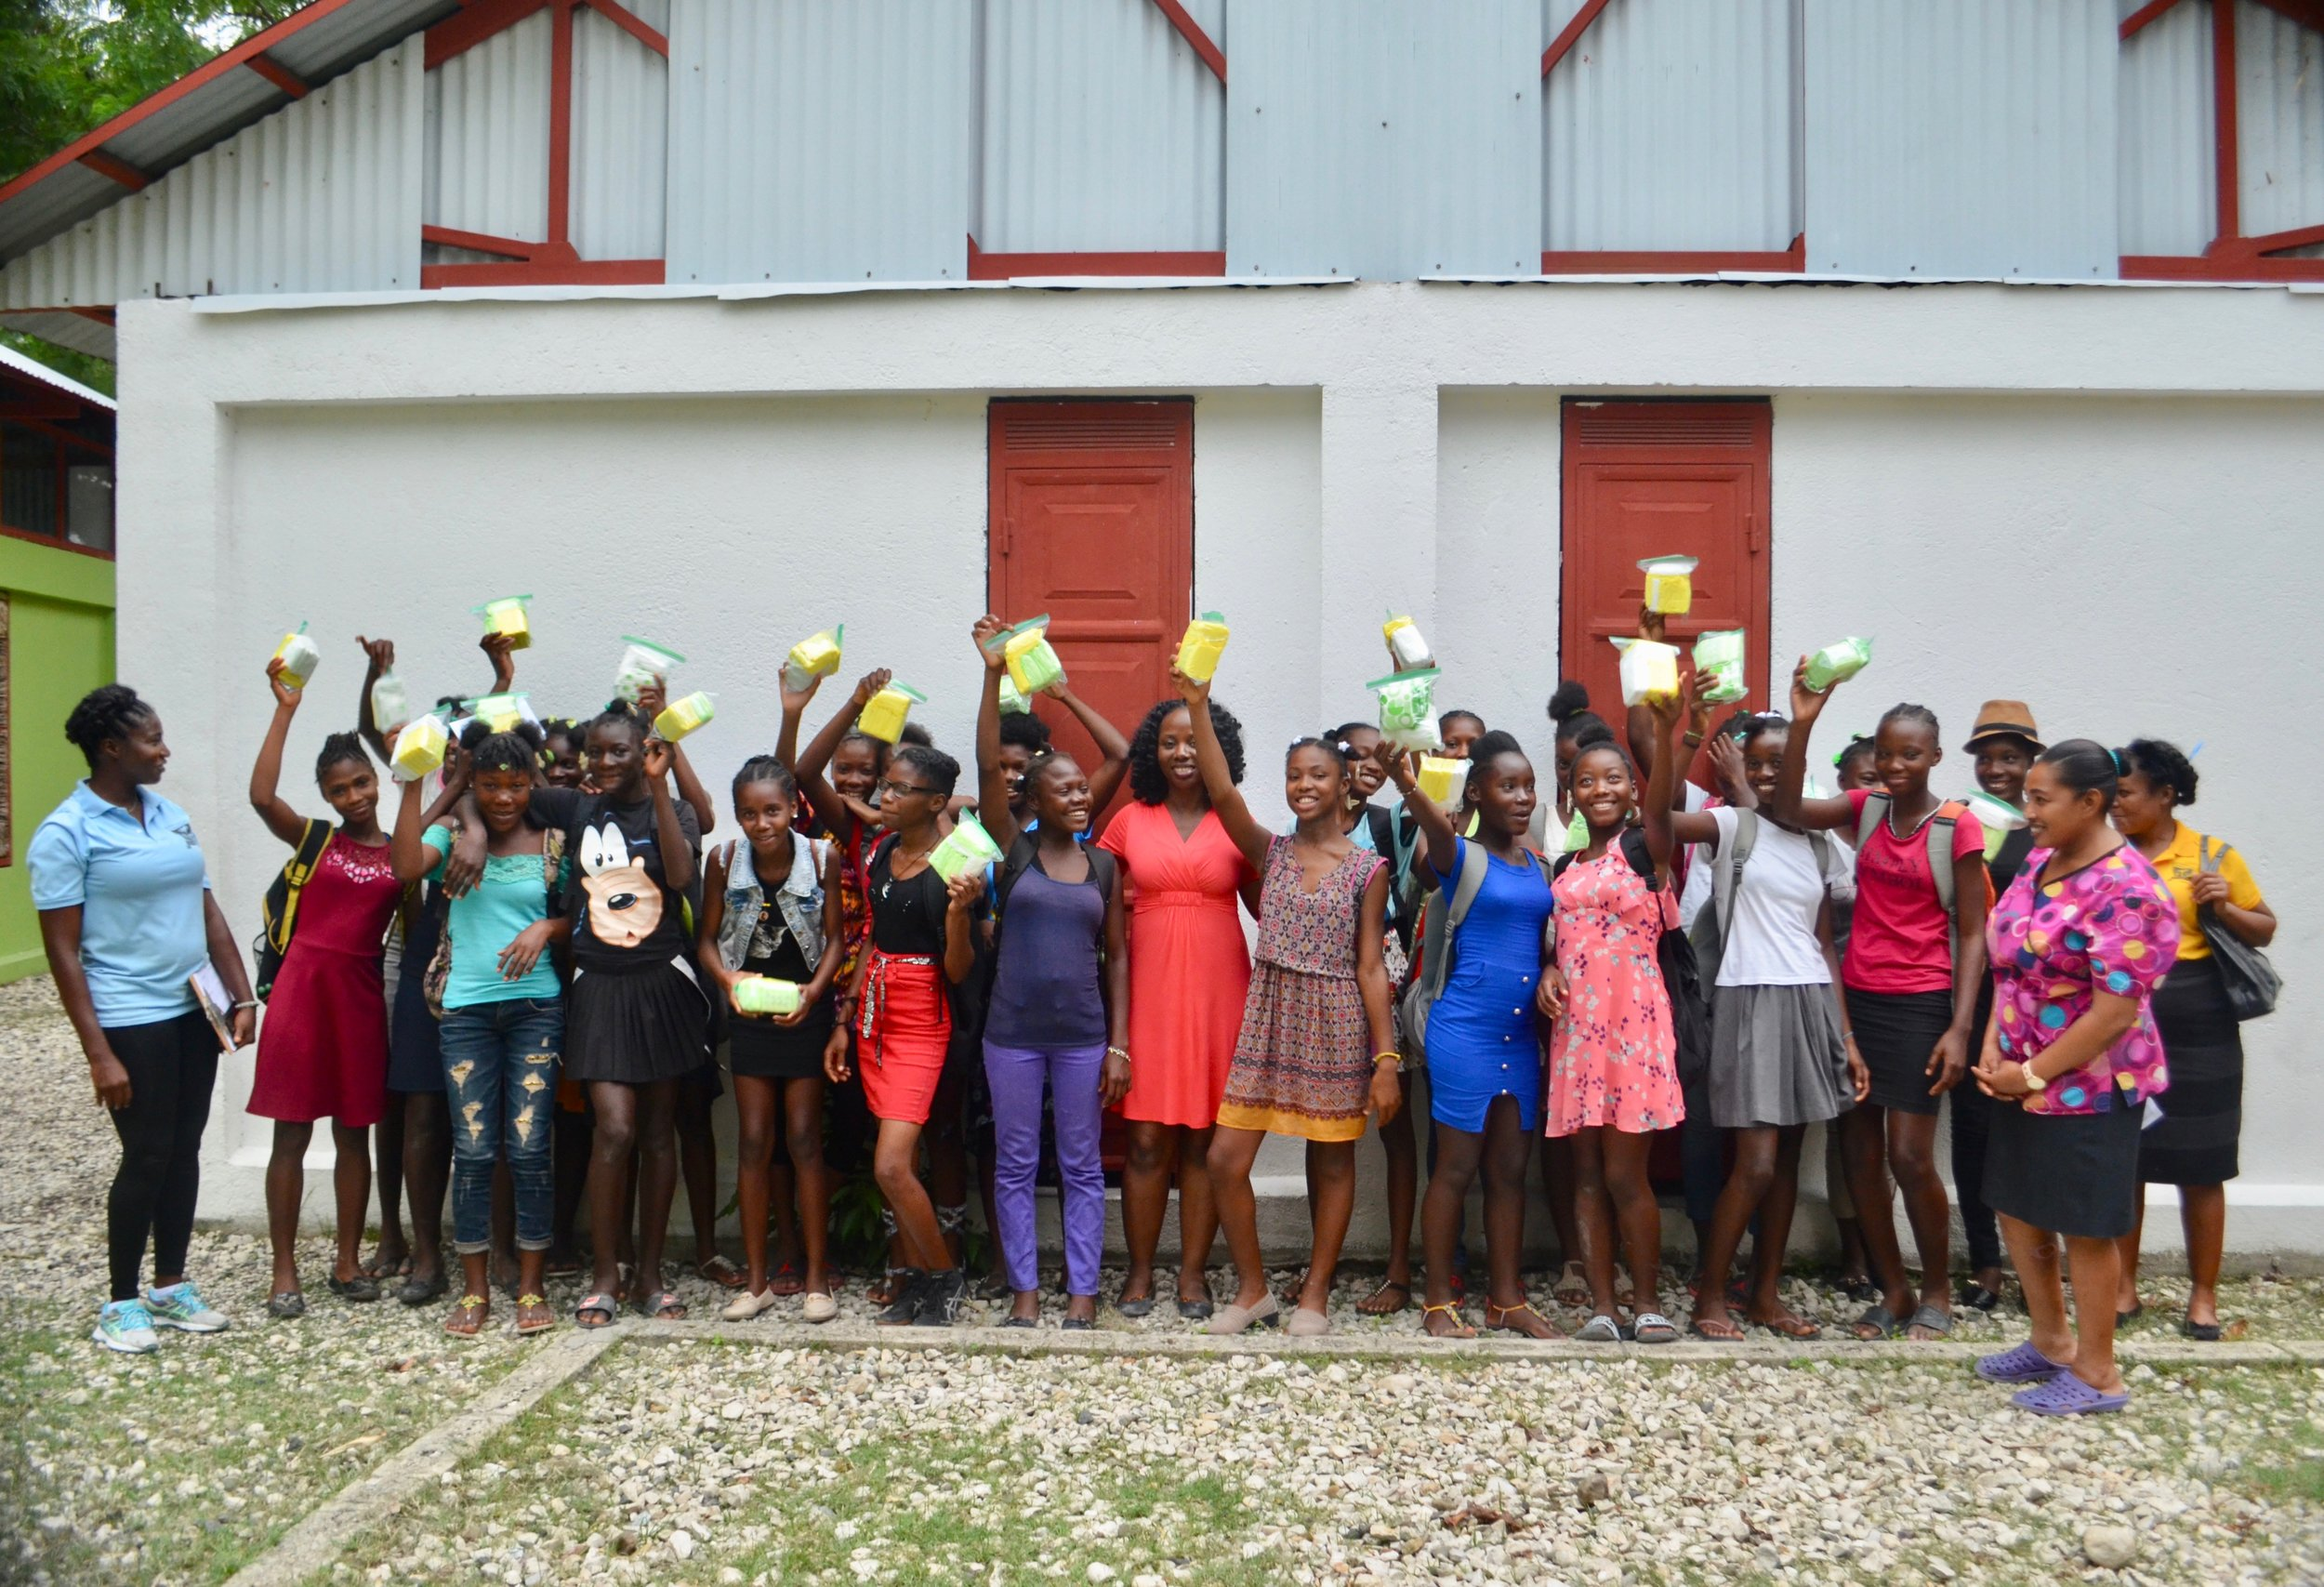 The female students of L'Ecole de Choix in Haiti holding up pads distributed by Cycle Forward.